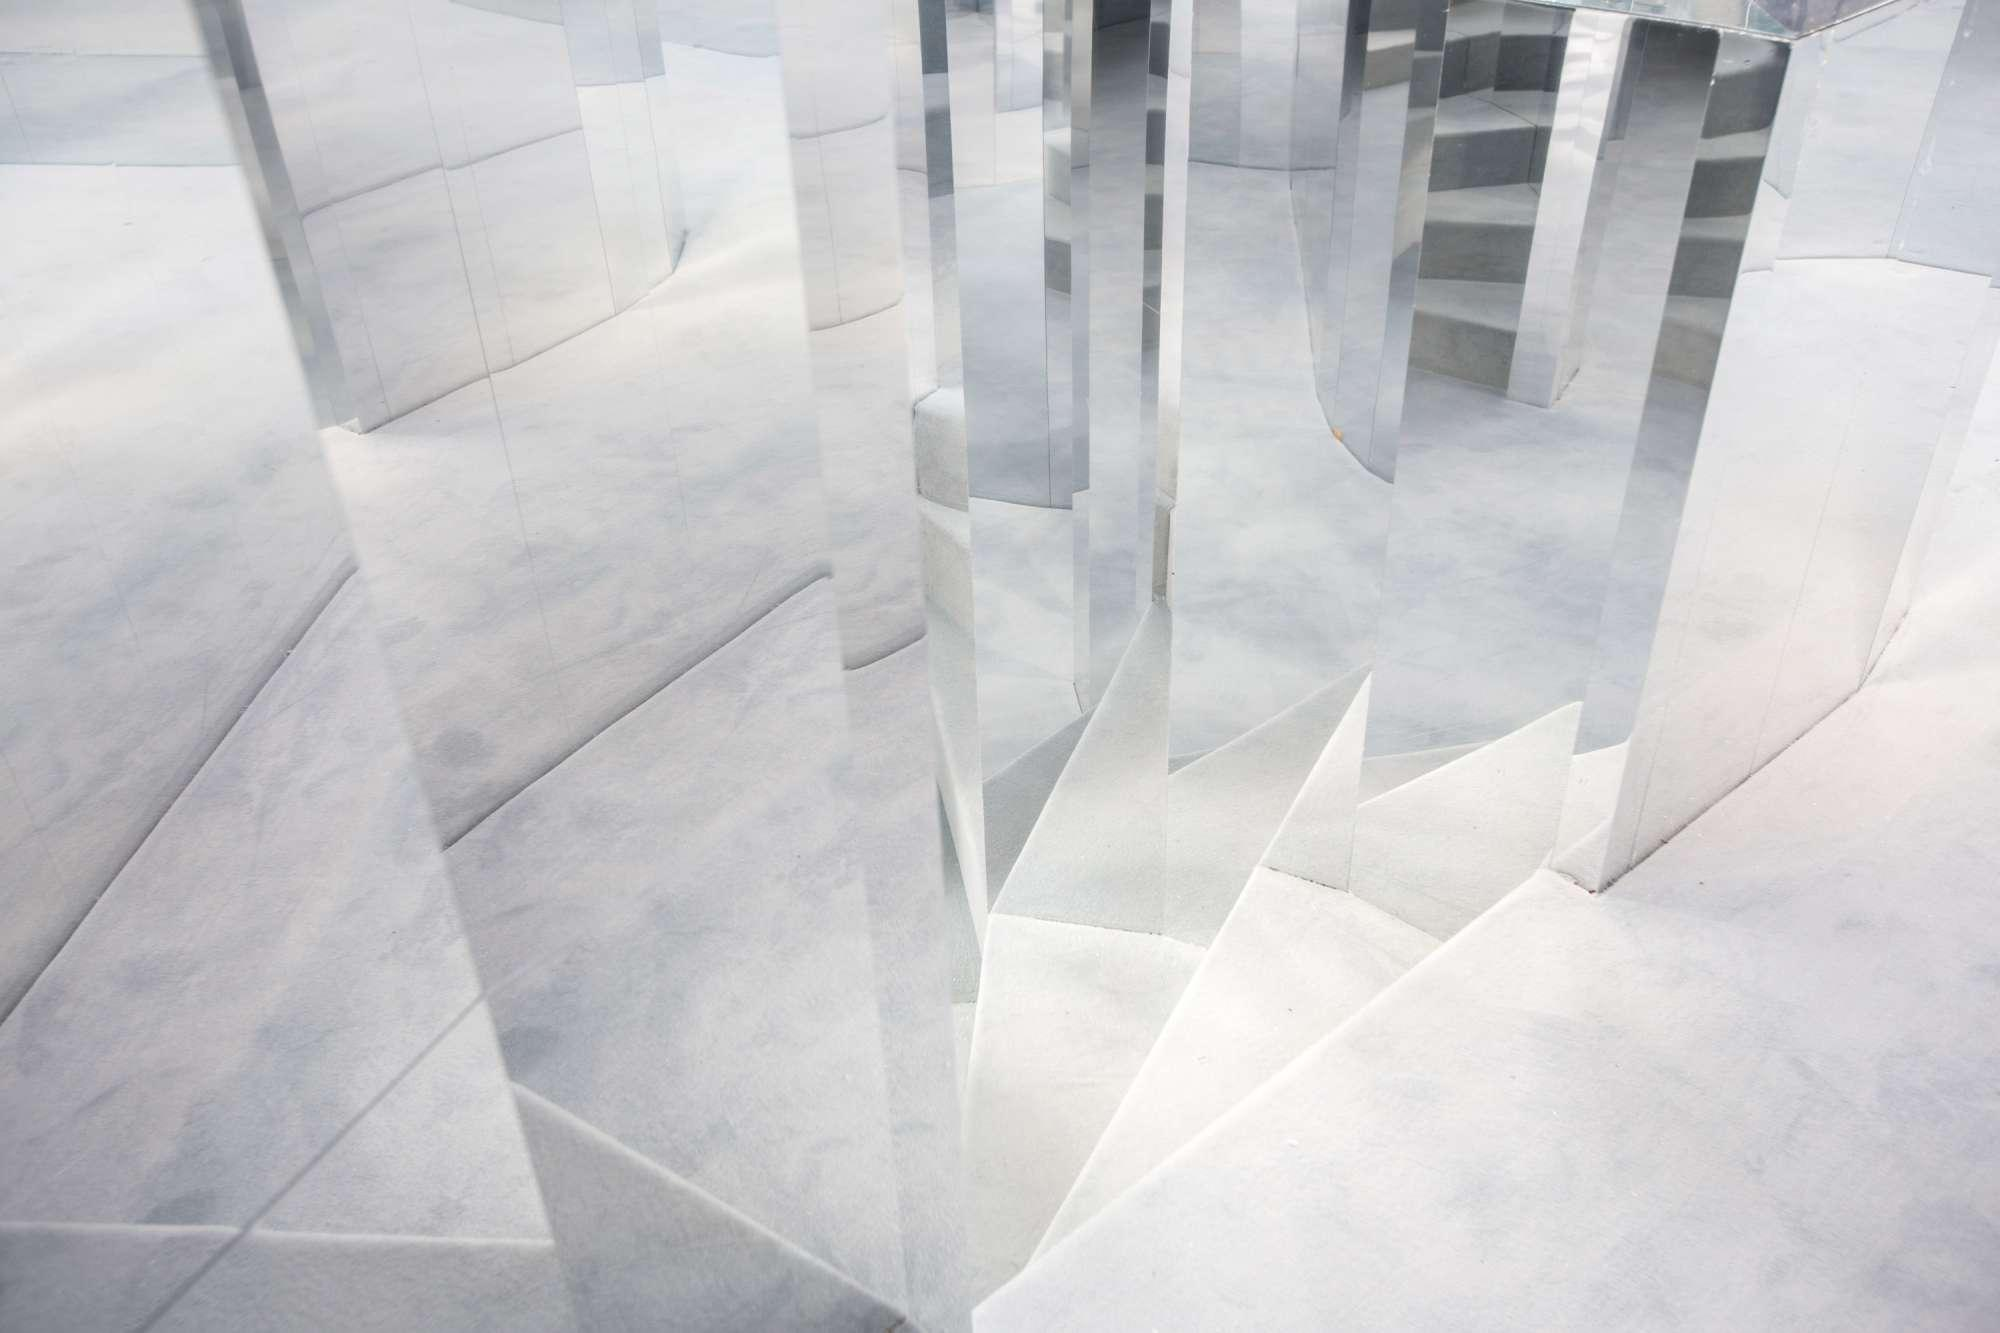 Es Devlin's Mirror Maze installation - mirrored staircase